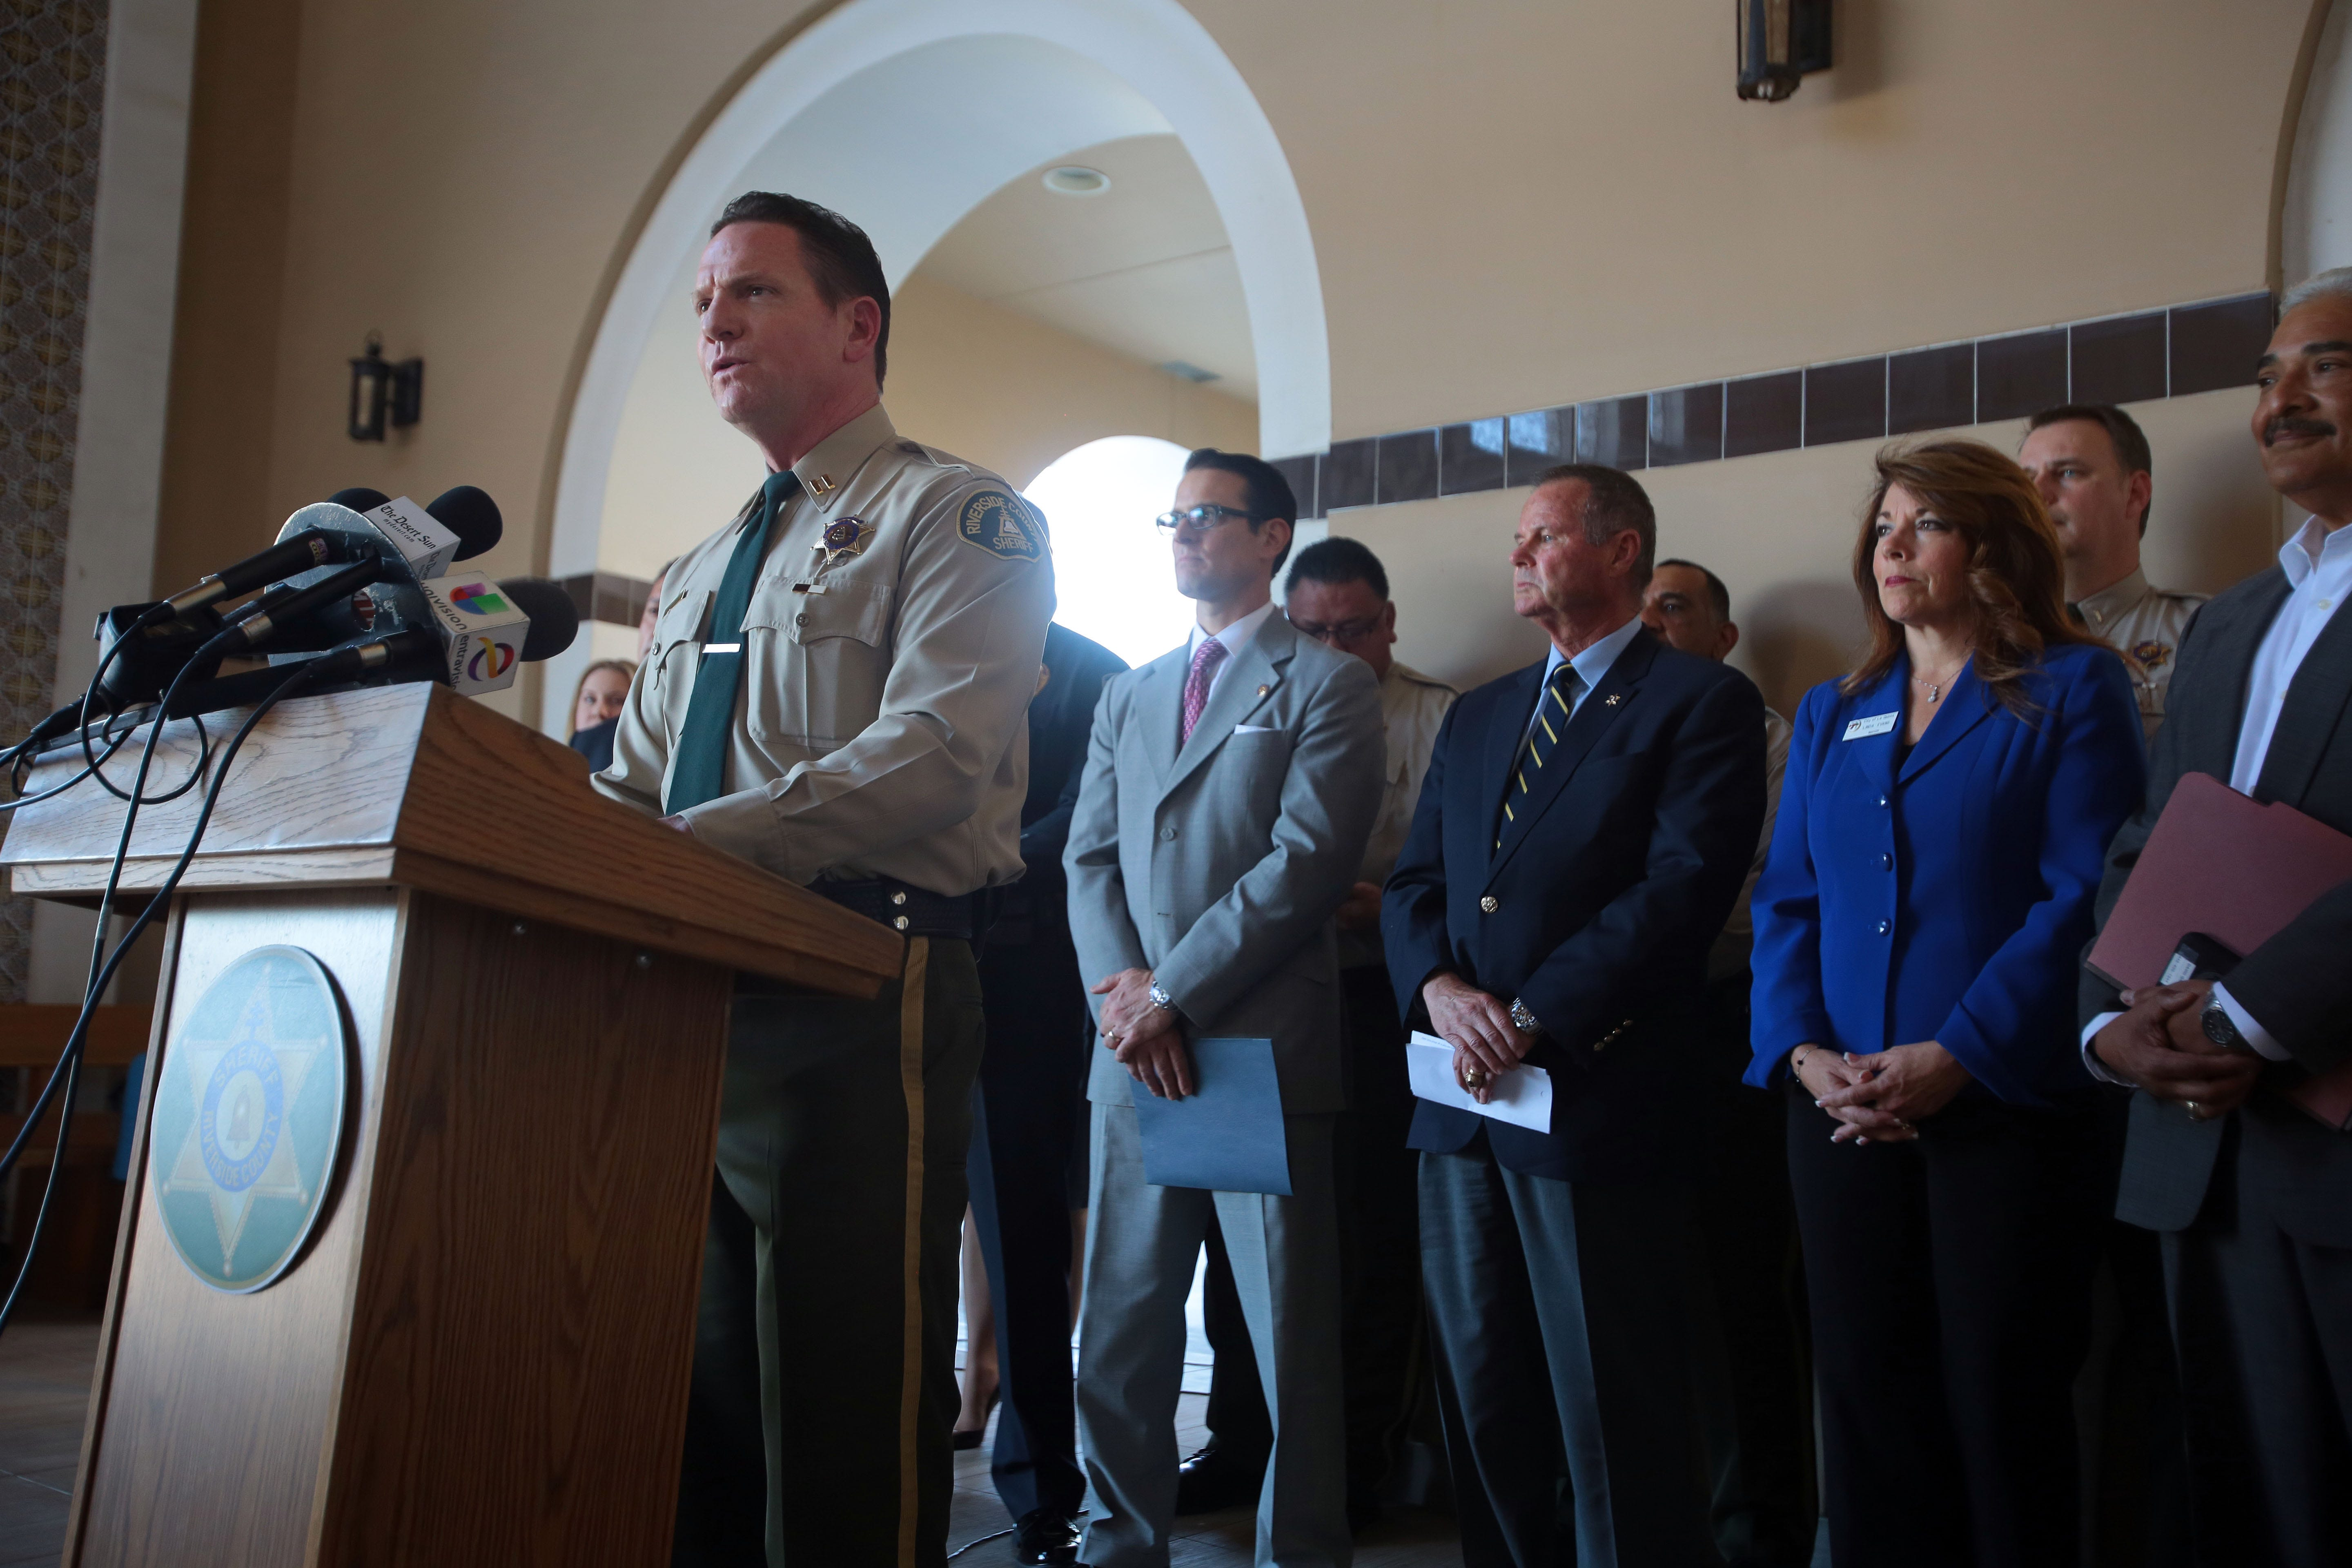 Riverside County Sheriff's Capt. Andrew Shouse, speaks during a 2016 news conference at the Thermal Sheriff's Station. Riverside County District Attorney Mike Hestrin and former Sheriff Stan Sniff stand behind him. Shouse was the commander of the Thermal Station from 2012-17.